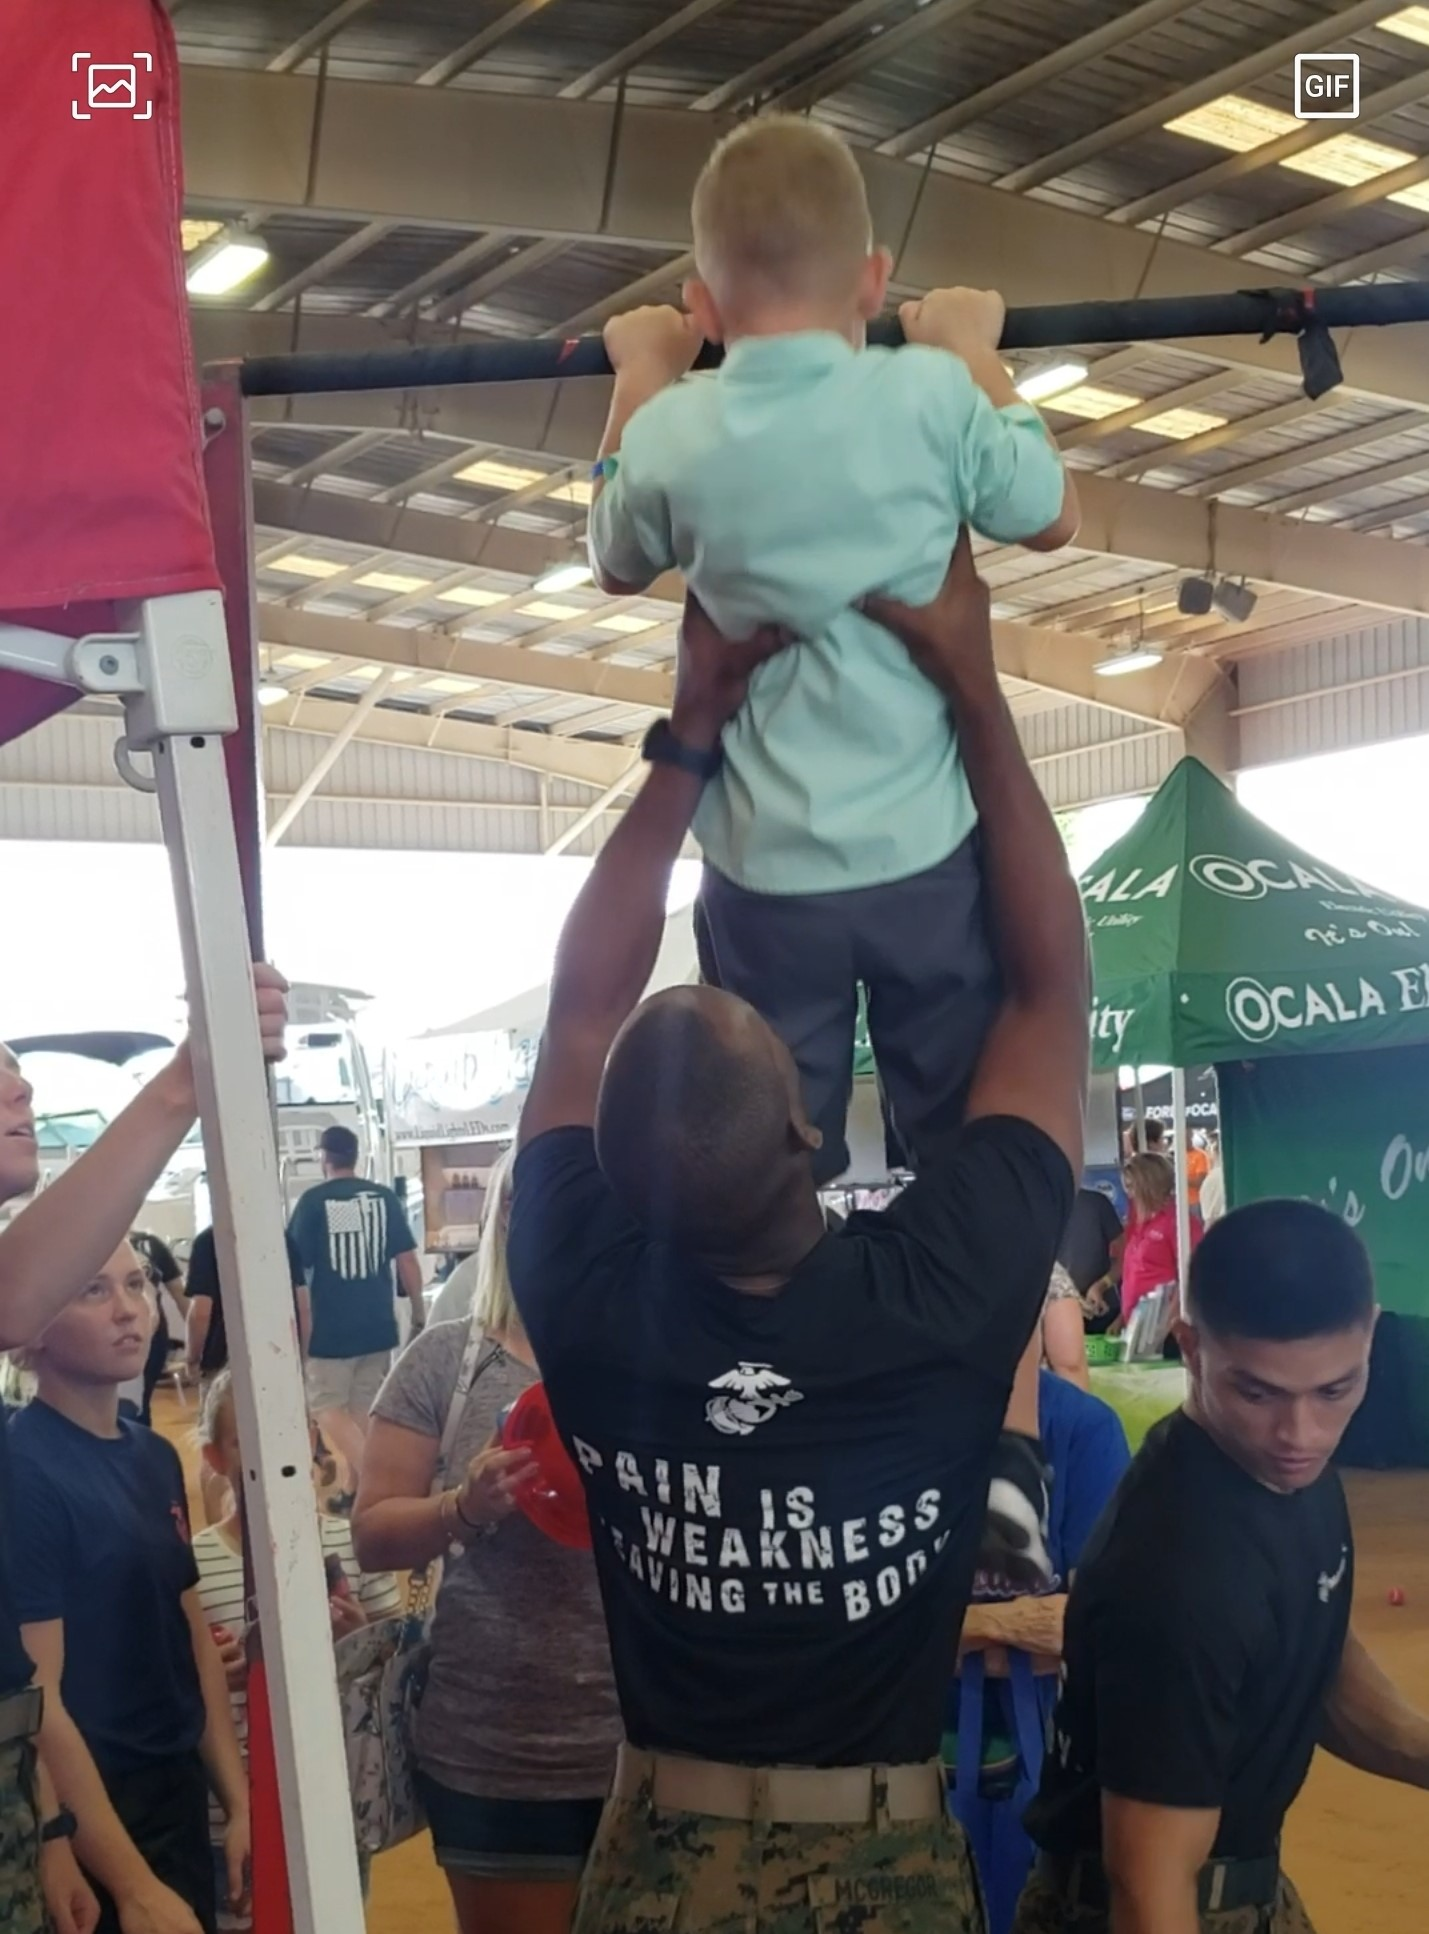 08-17-2019 Diane's Grandson with US Marines on Pull Up Bar